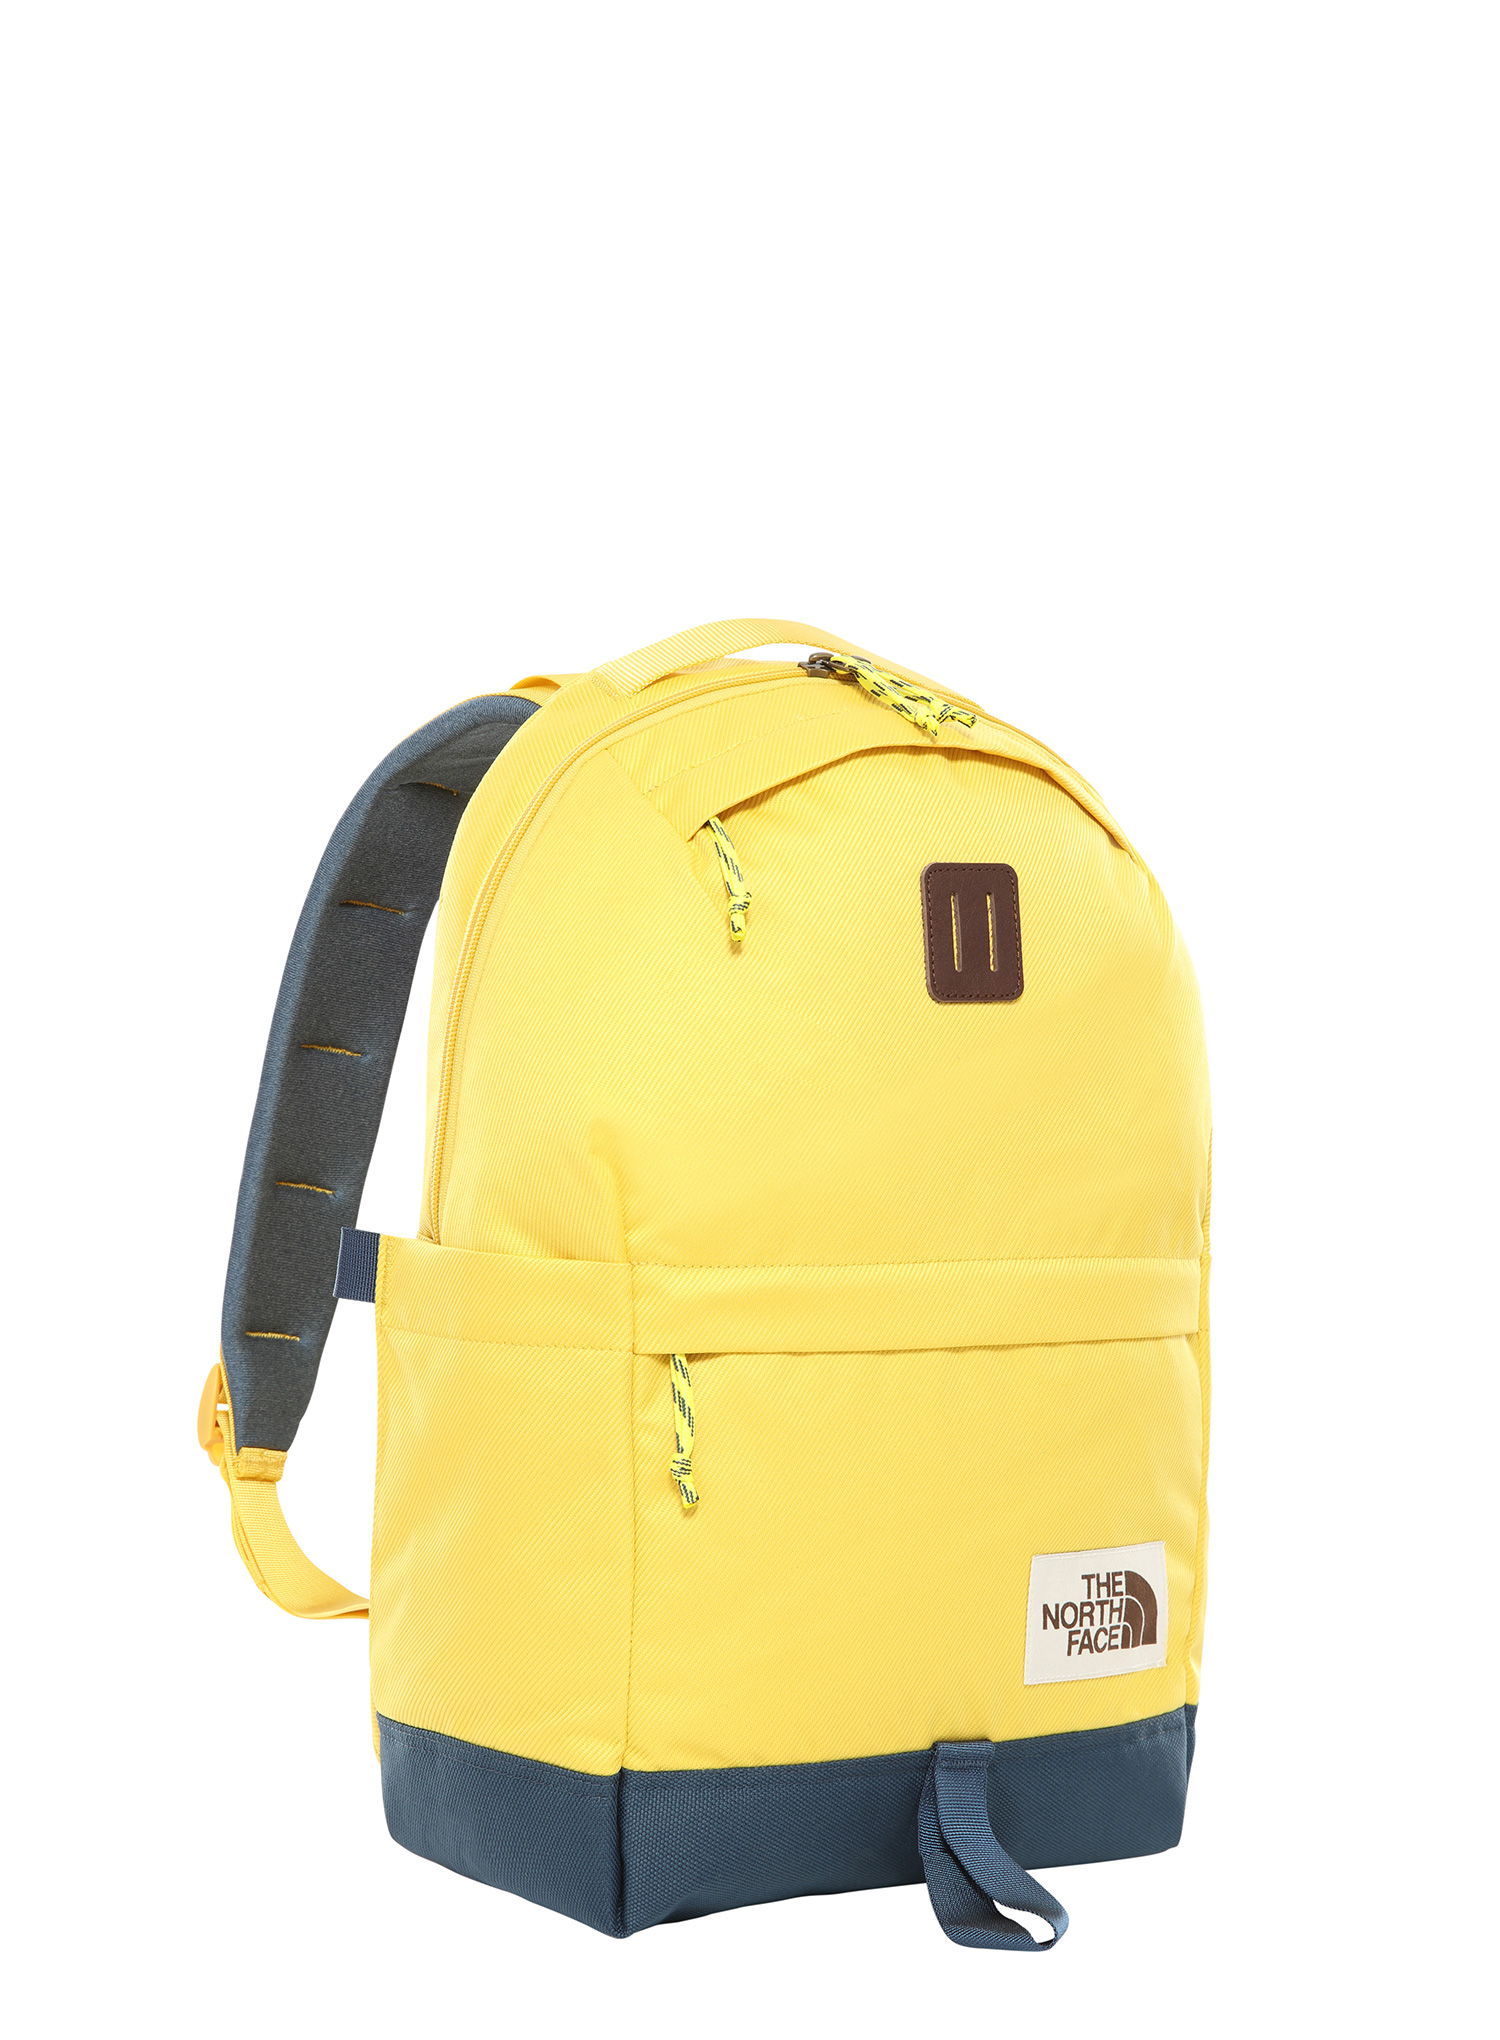 Plecak The North Face Daypack - bamboo yellow/blue - zdjęcie nr. 1